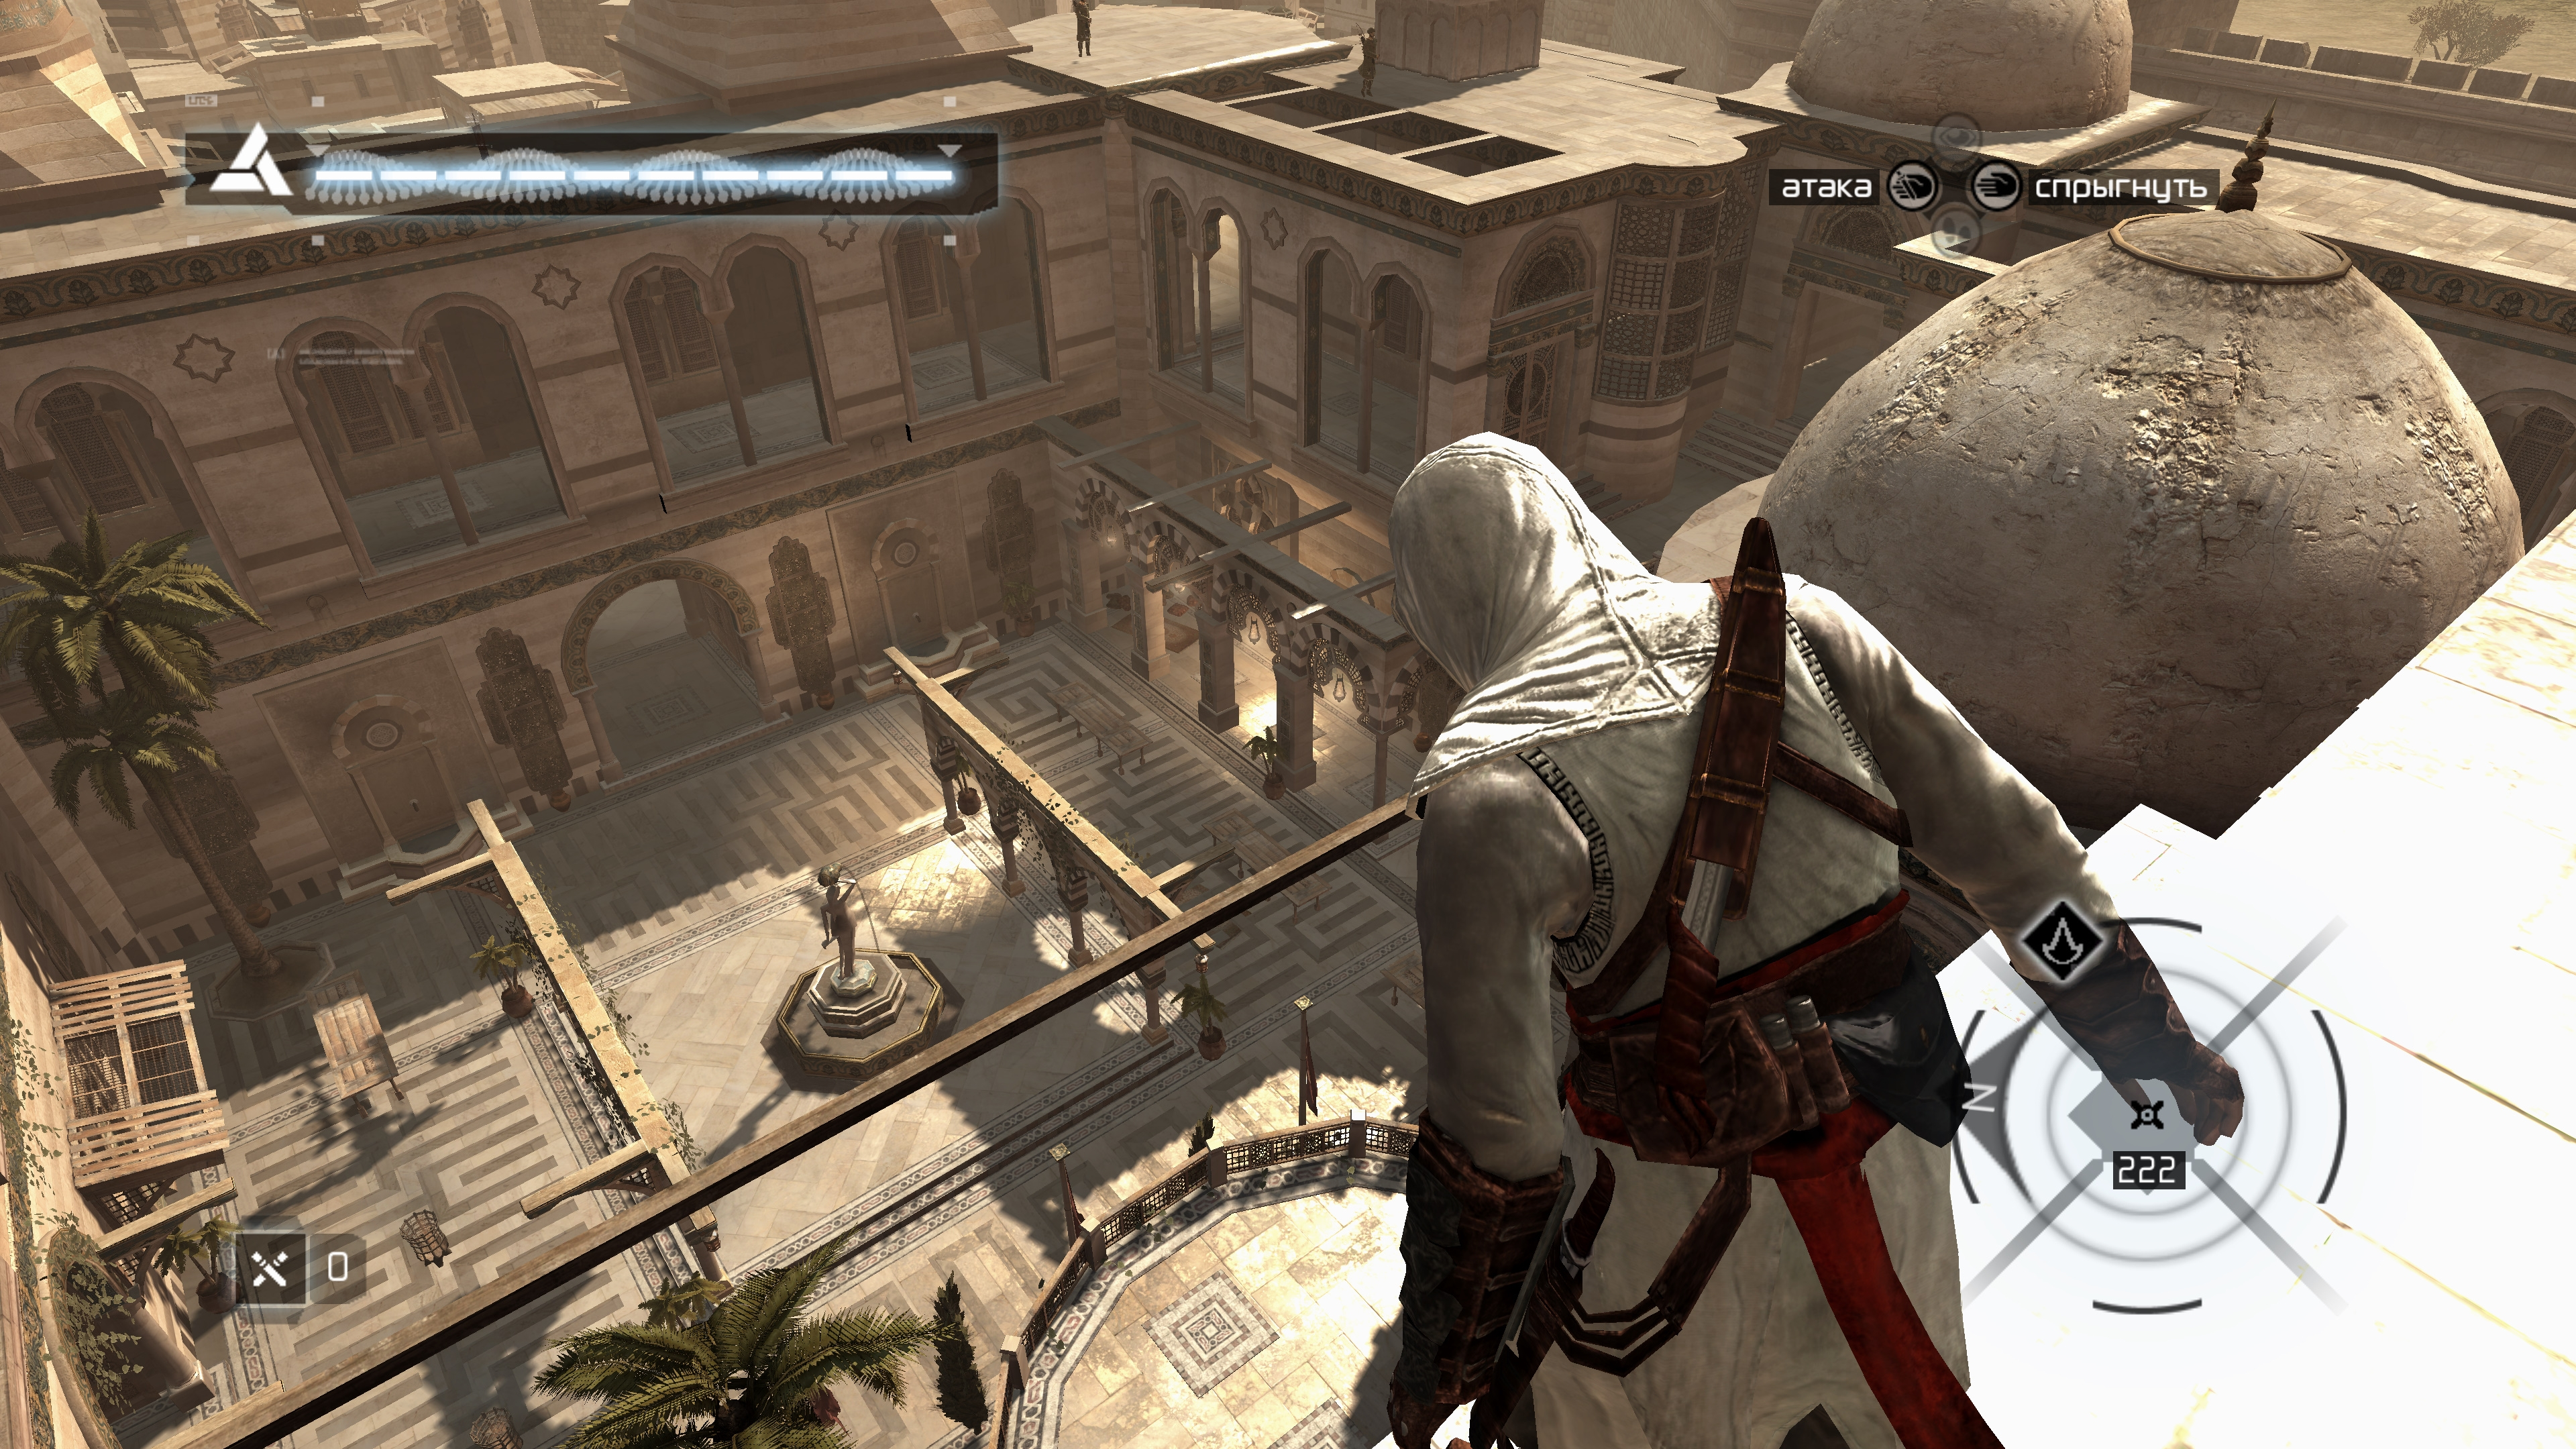 AssassinsCreed_Dx10 2020-02-11 20-41-22-400.jpg - Assassin's Creed